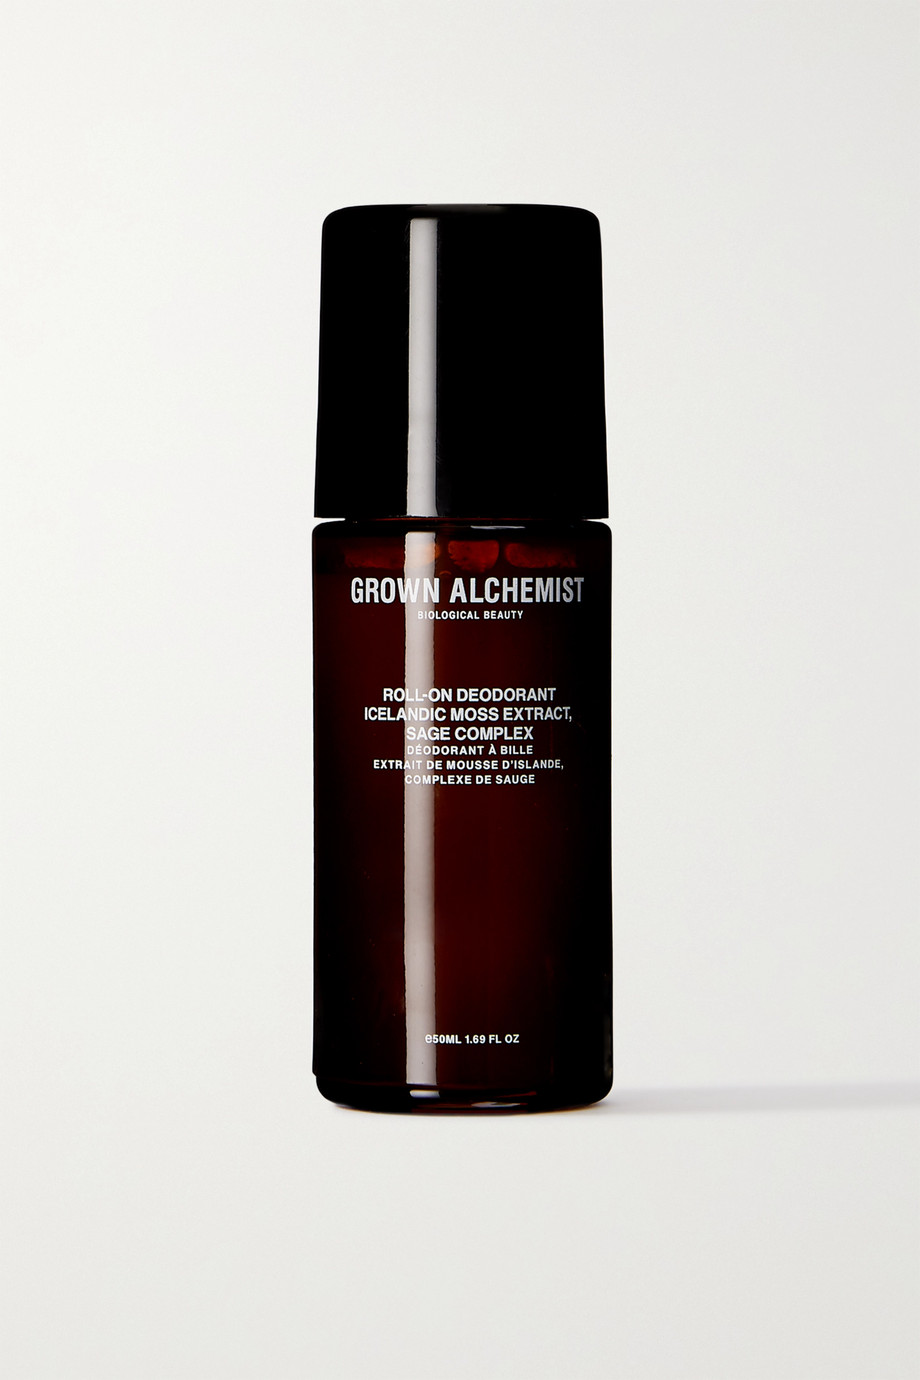 GROWN ALCHEMIST Roll-On Deodorant, 50ml